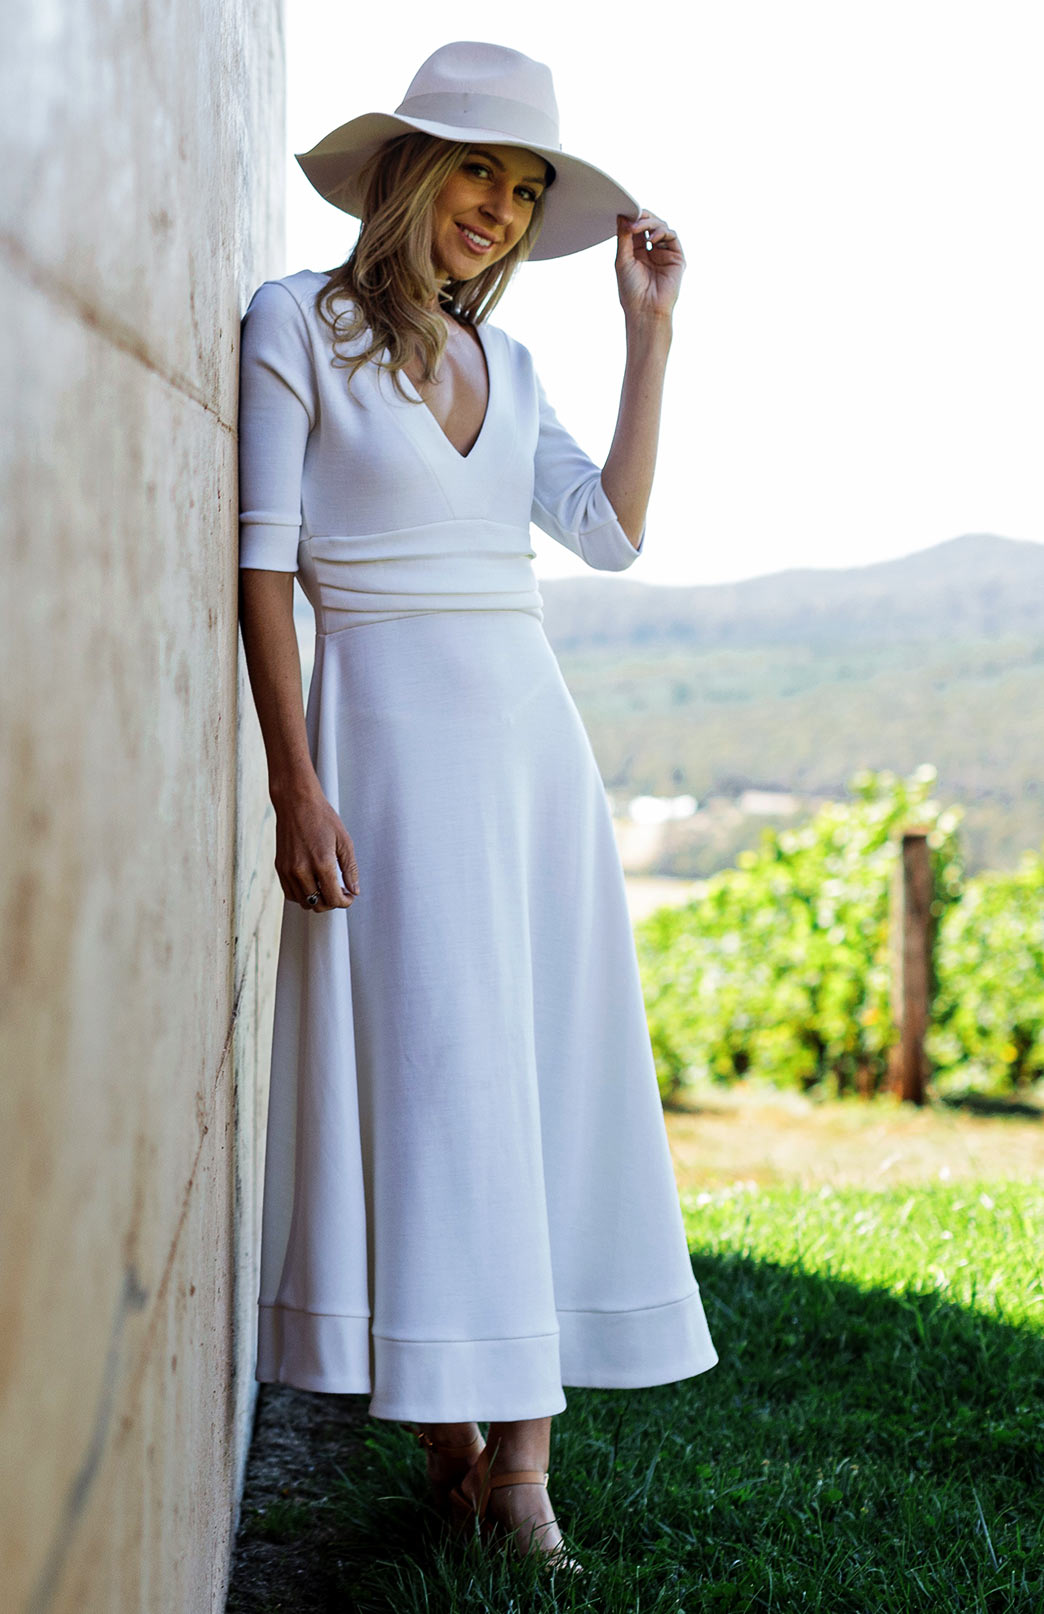 Ava Dress - Women's Vintage Ivory Ponte Wool Party Dress with Elbow Length Sleeves, Deep V-Neckline, Pleated Waistband and Flowing Long Line Skirt - Smitten Merino Tasmania Australia